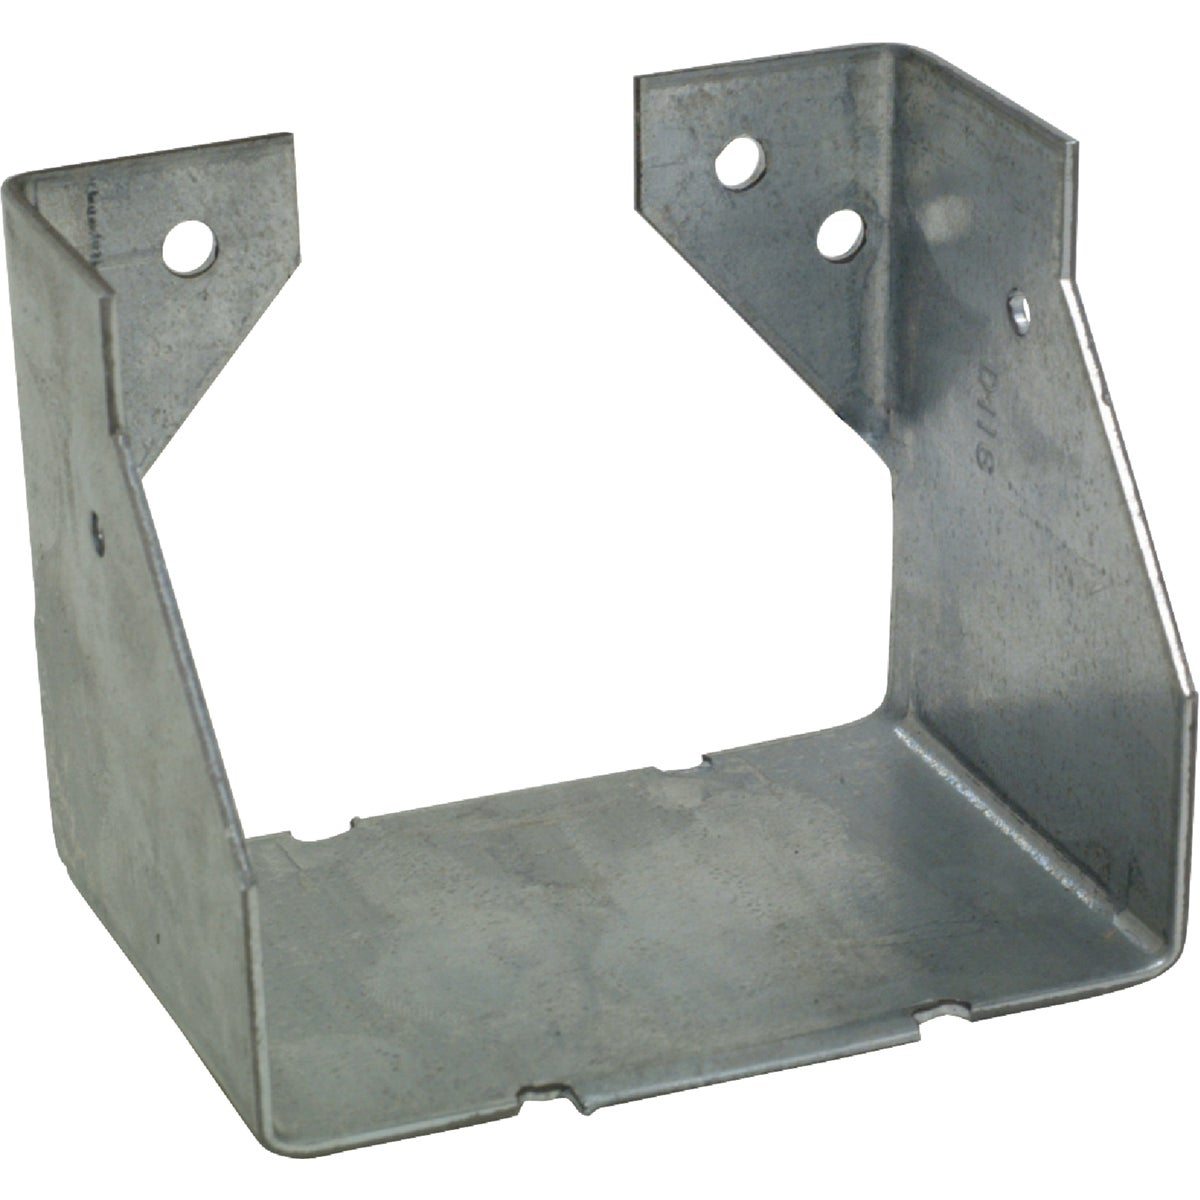 4X4 JOIST HANGER - HUC44 by Simpson Strong Tie